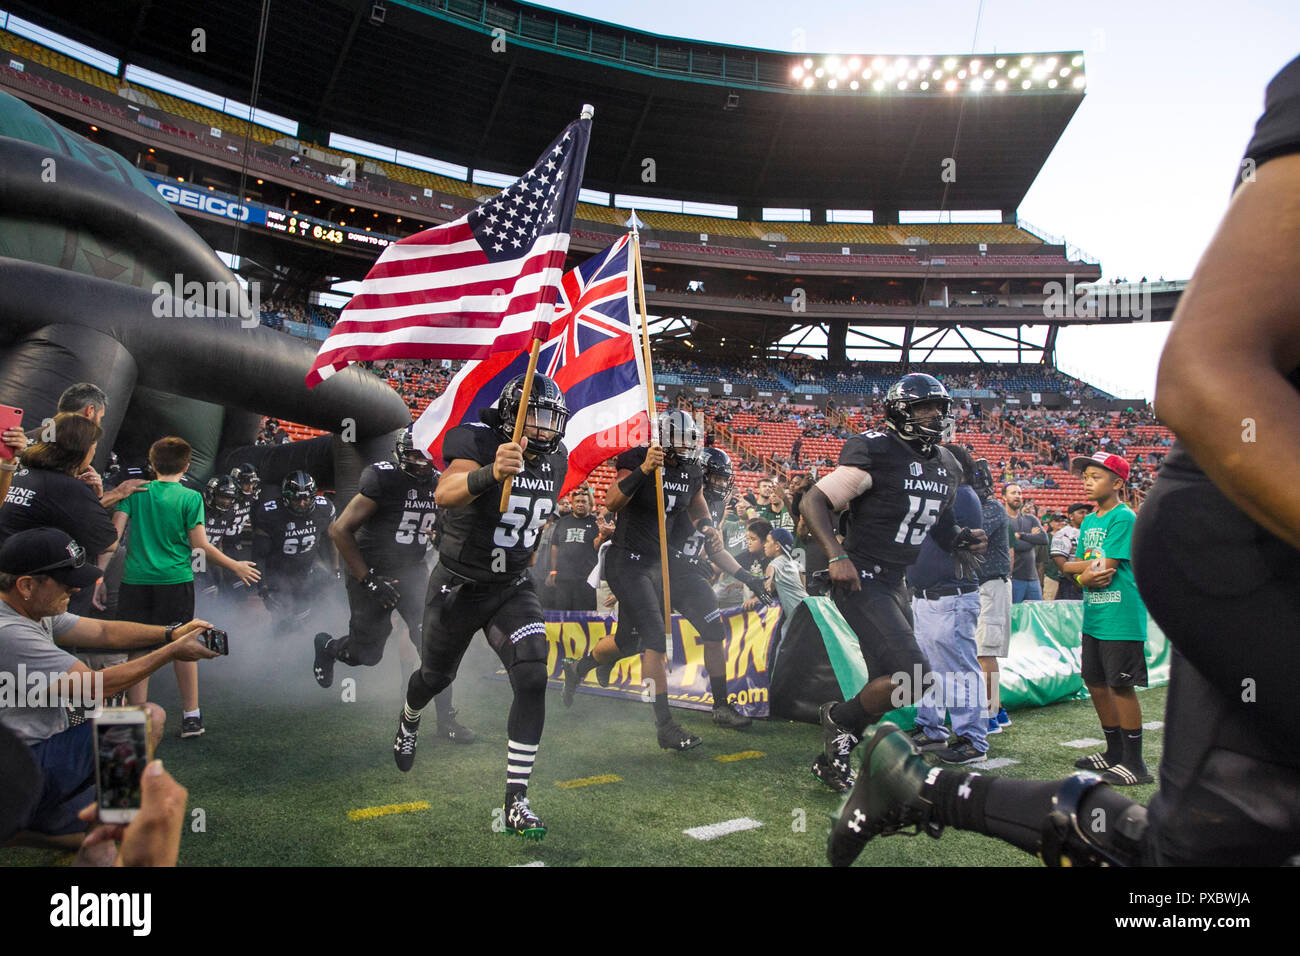 October 20, 2018 - Hawaii players carry the flags of USA and Hawaii before the game between the Hawaii Rainbow Warriors and the Nevada Wolfpack at Aloha Stadium in Honolulu, HI. - Glenn Yoza/CSM Stock Photo